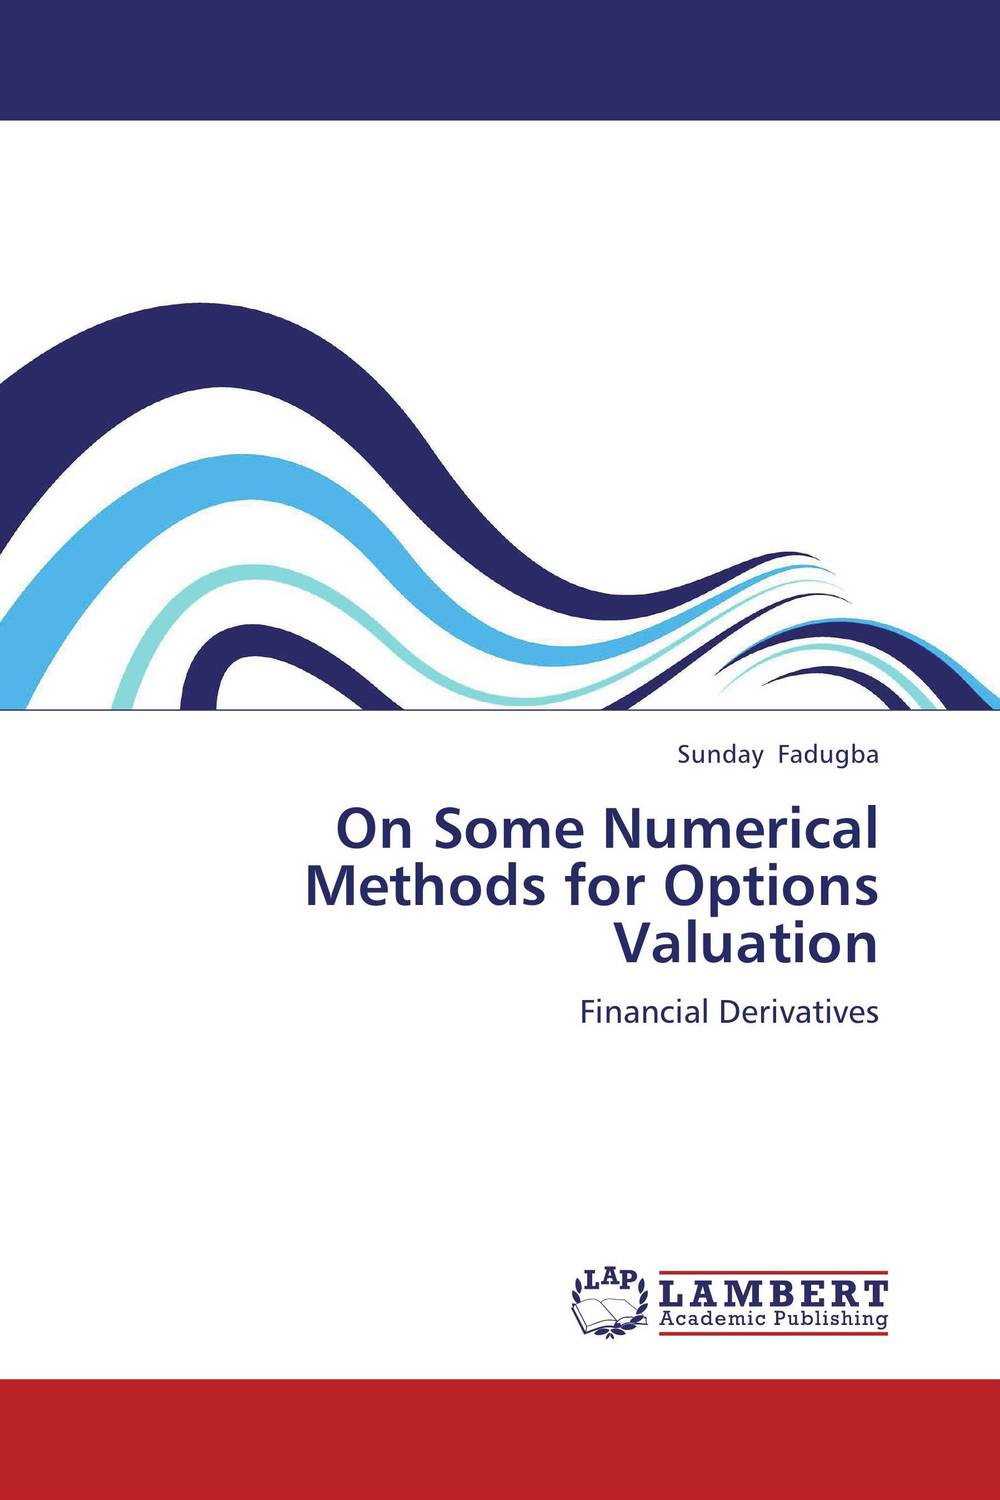 On Some Numerical Methods for Options Valuation